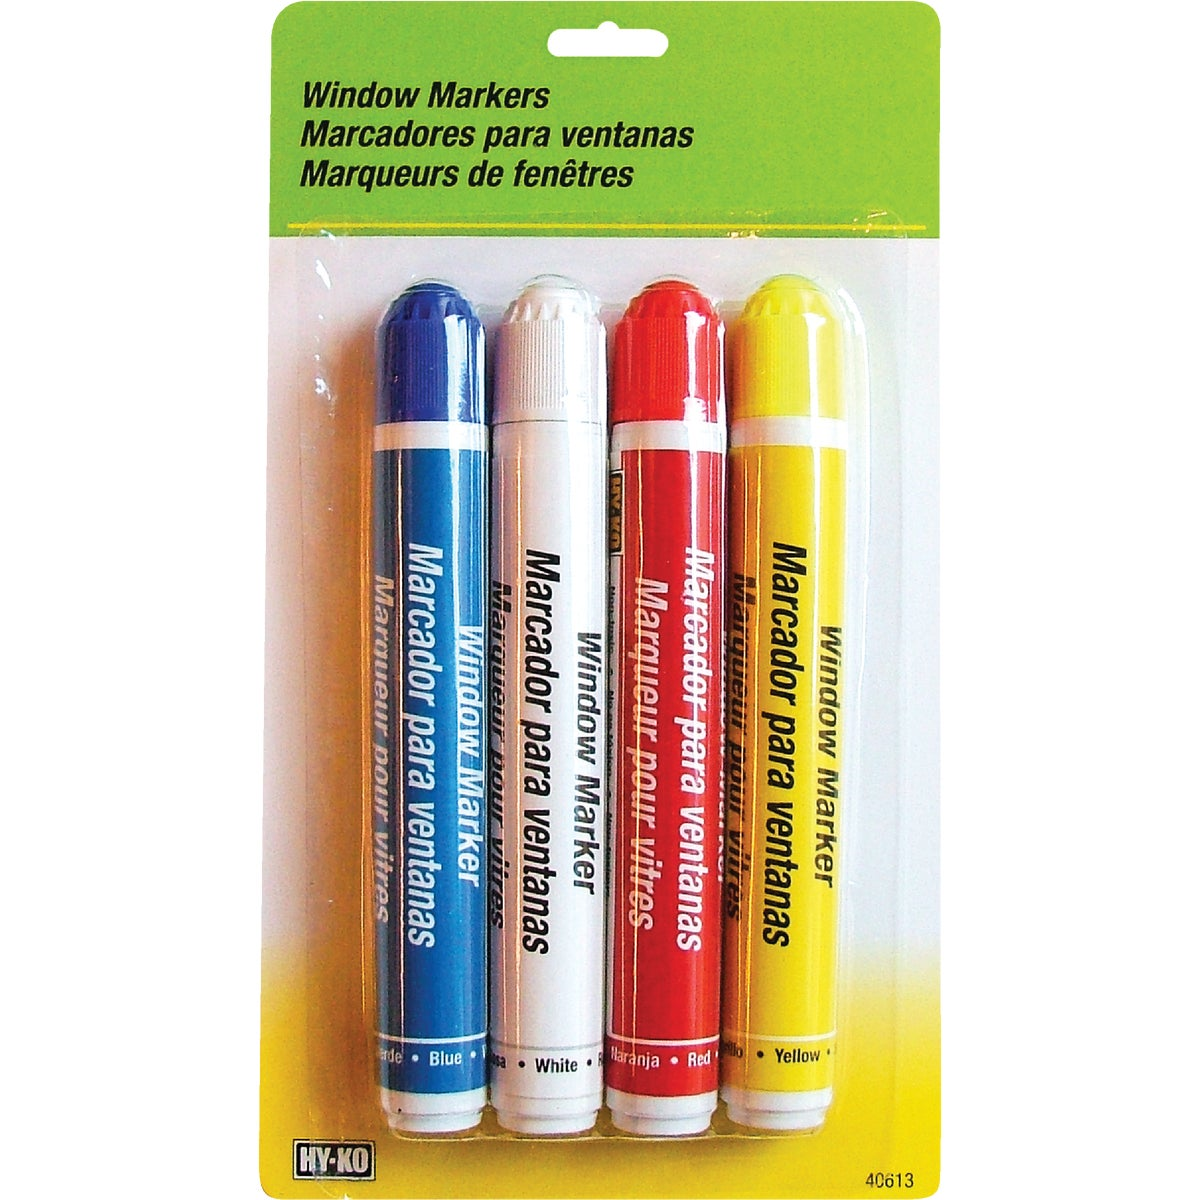 4PK ASST WINDOW MARKERS